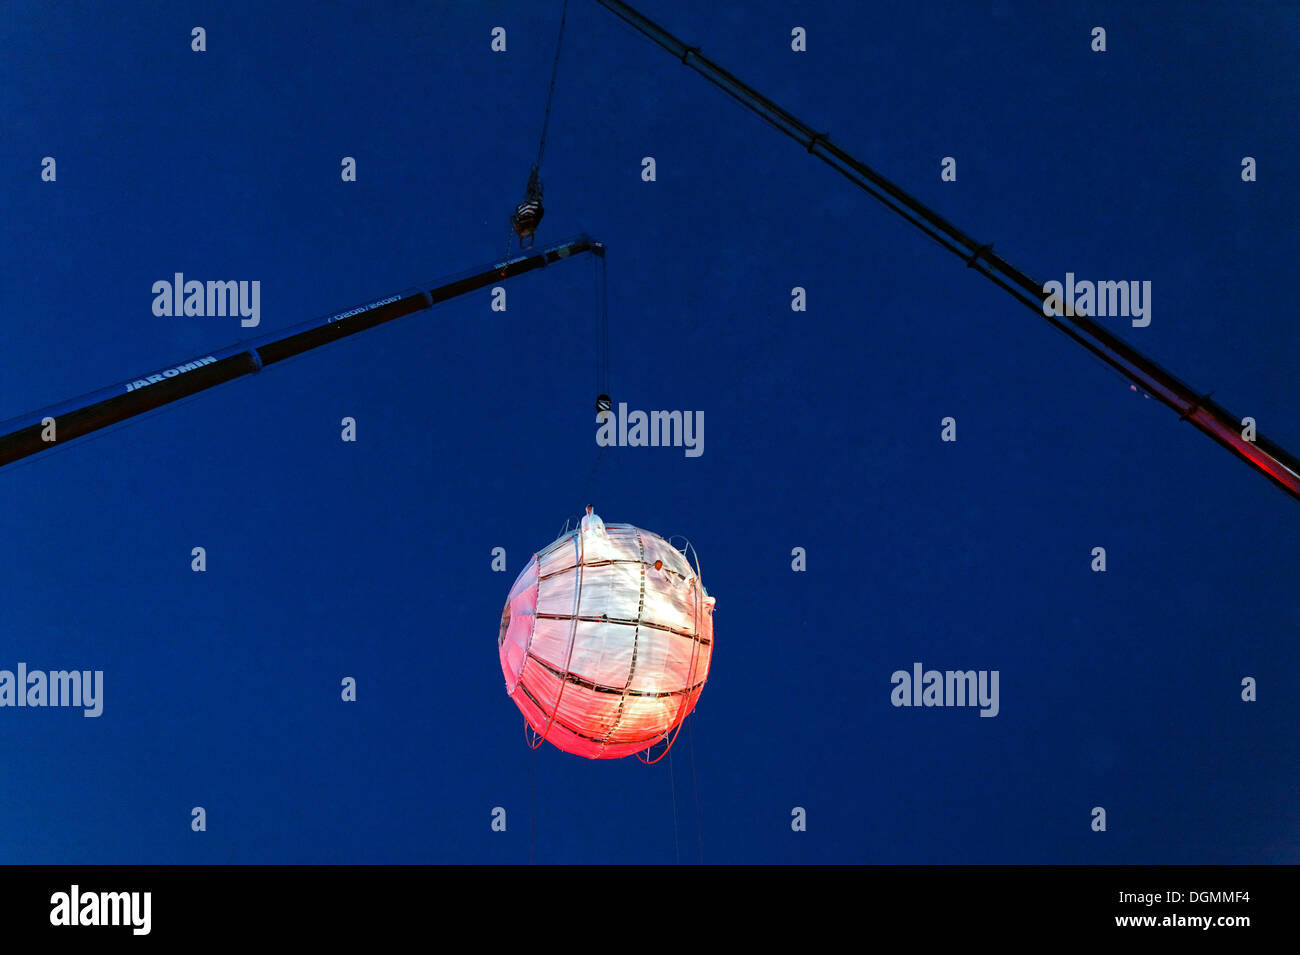 Illuminated balloon hanging from ropes in the air, globe, Global Rheingold, open-air theater by La Fura dels Baus - Stock Image